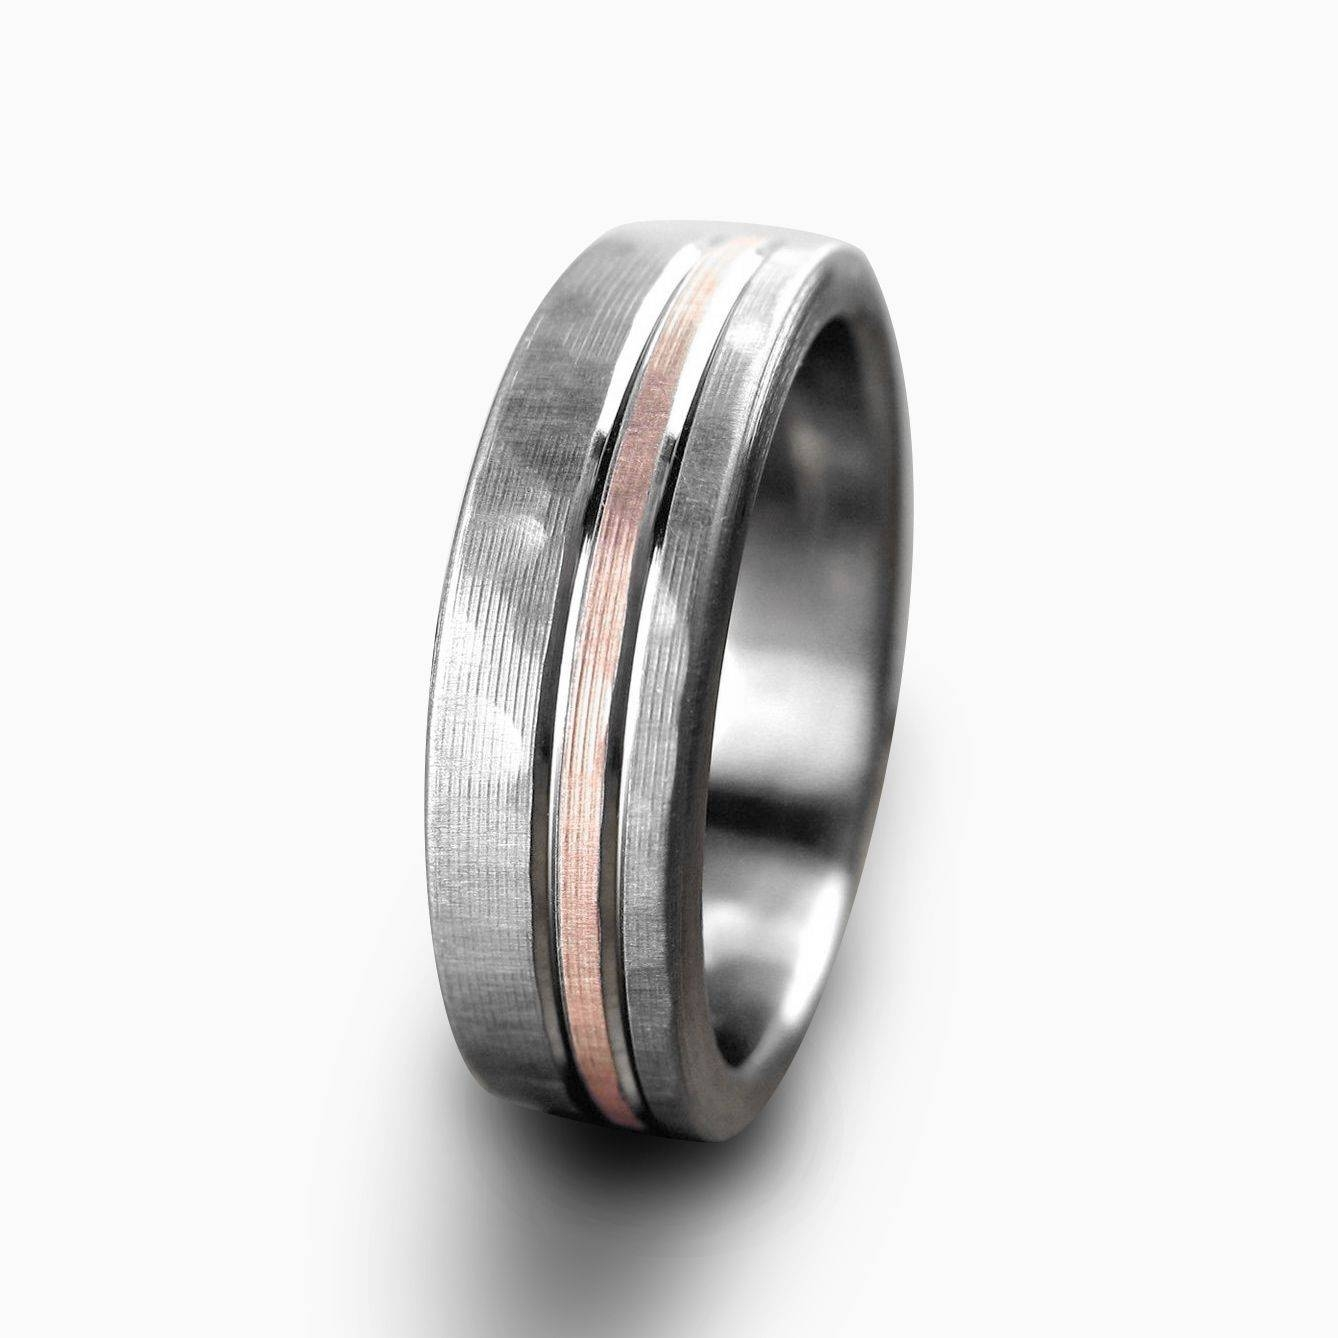 Buy A Hand Crafted Personalized Titanium & Rose Gold Hammered Regarding Mens Hammered Wedding Bands (Gallery 7 of 15)